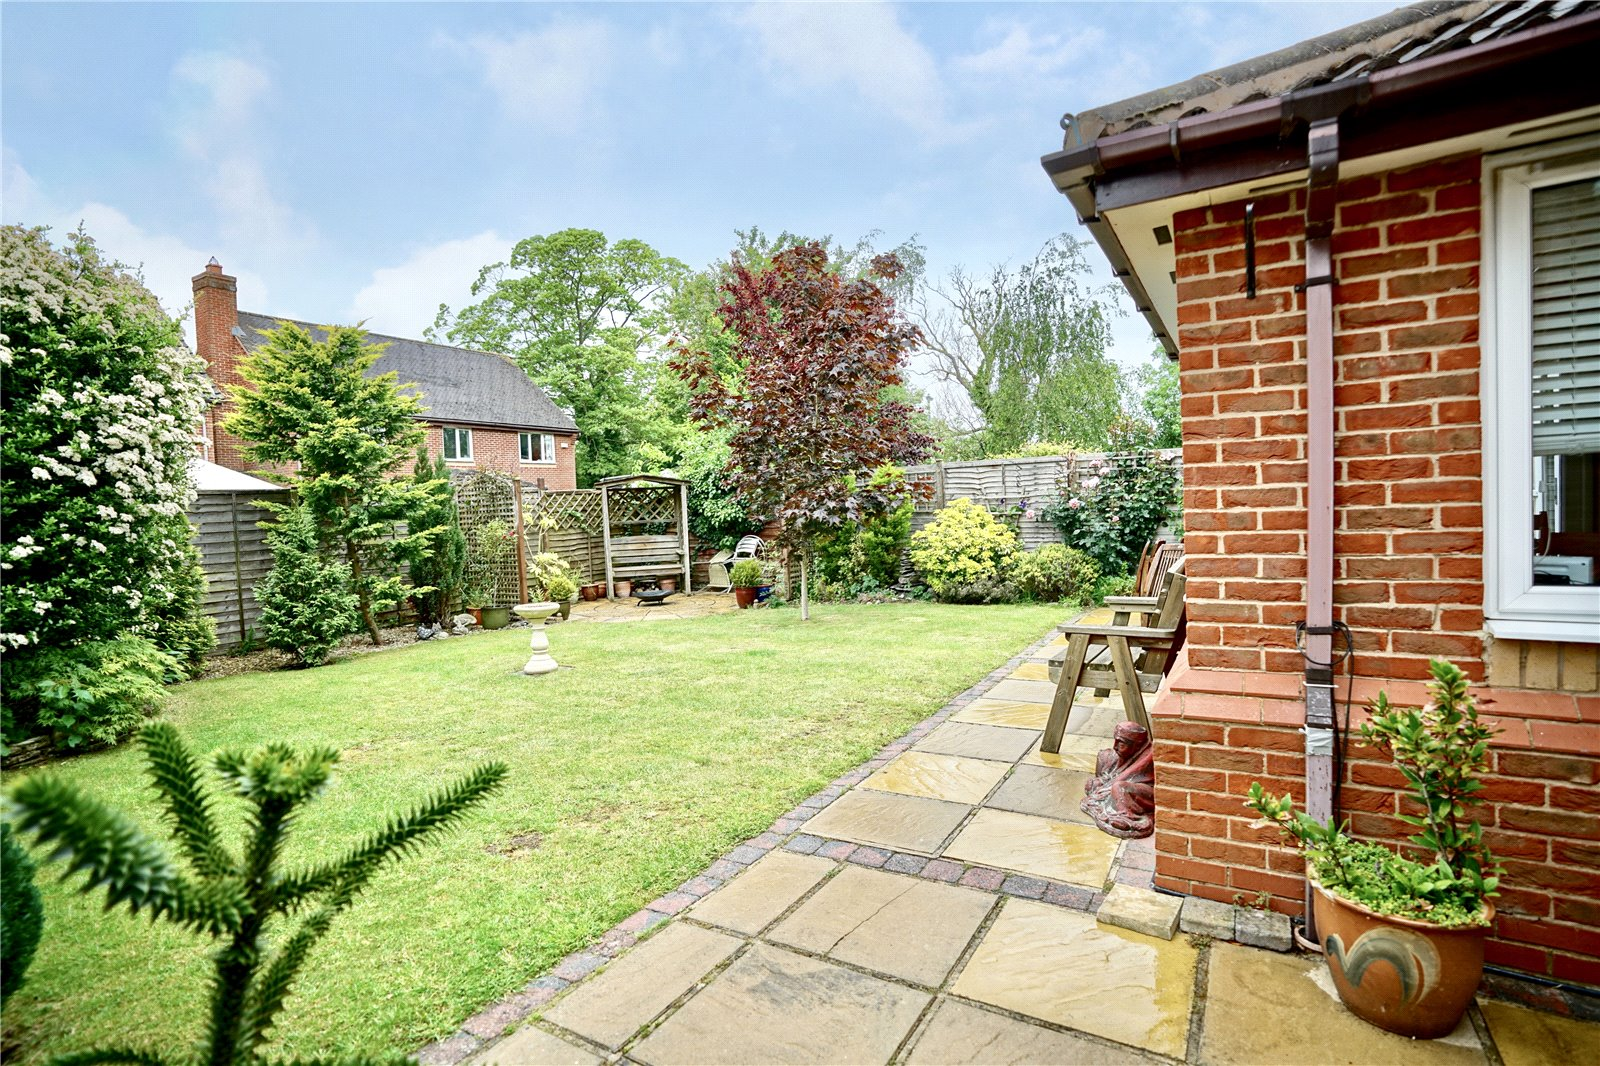 4 bed house for sale in Great Gransden  - Property Image 10